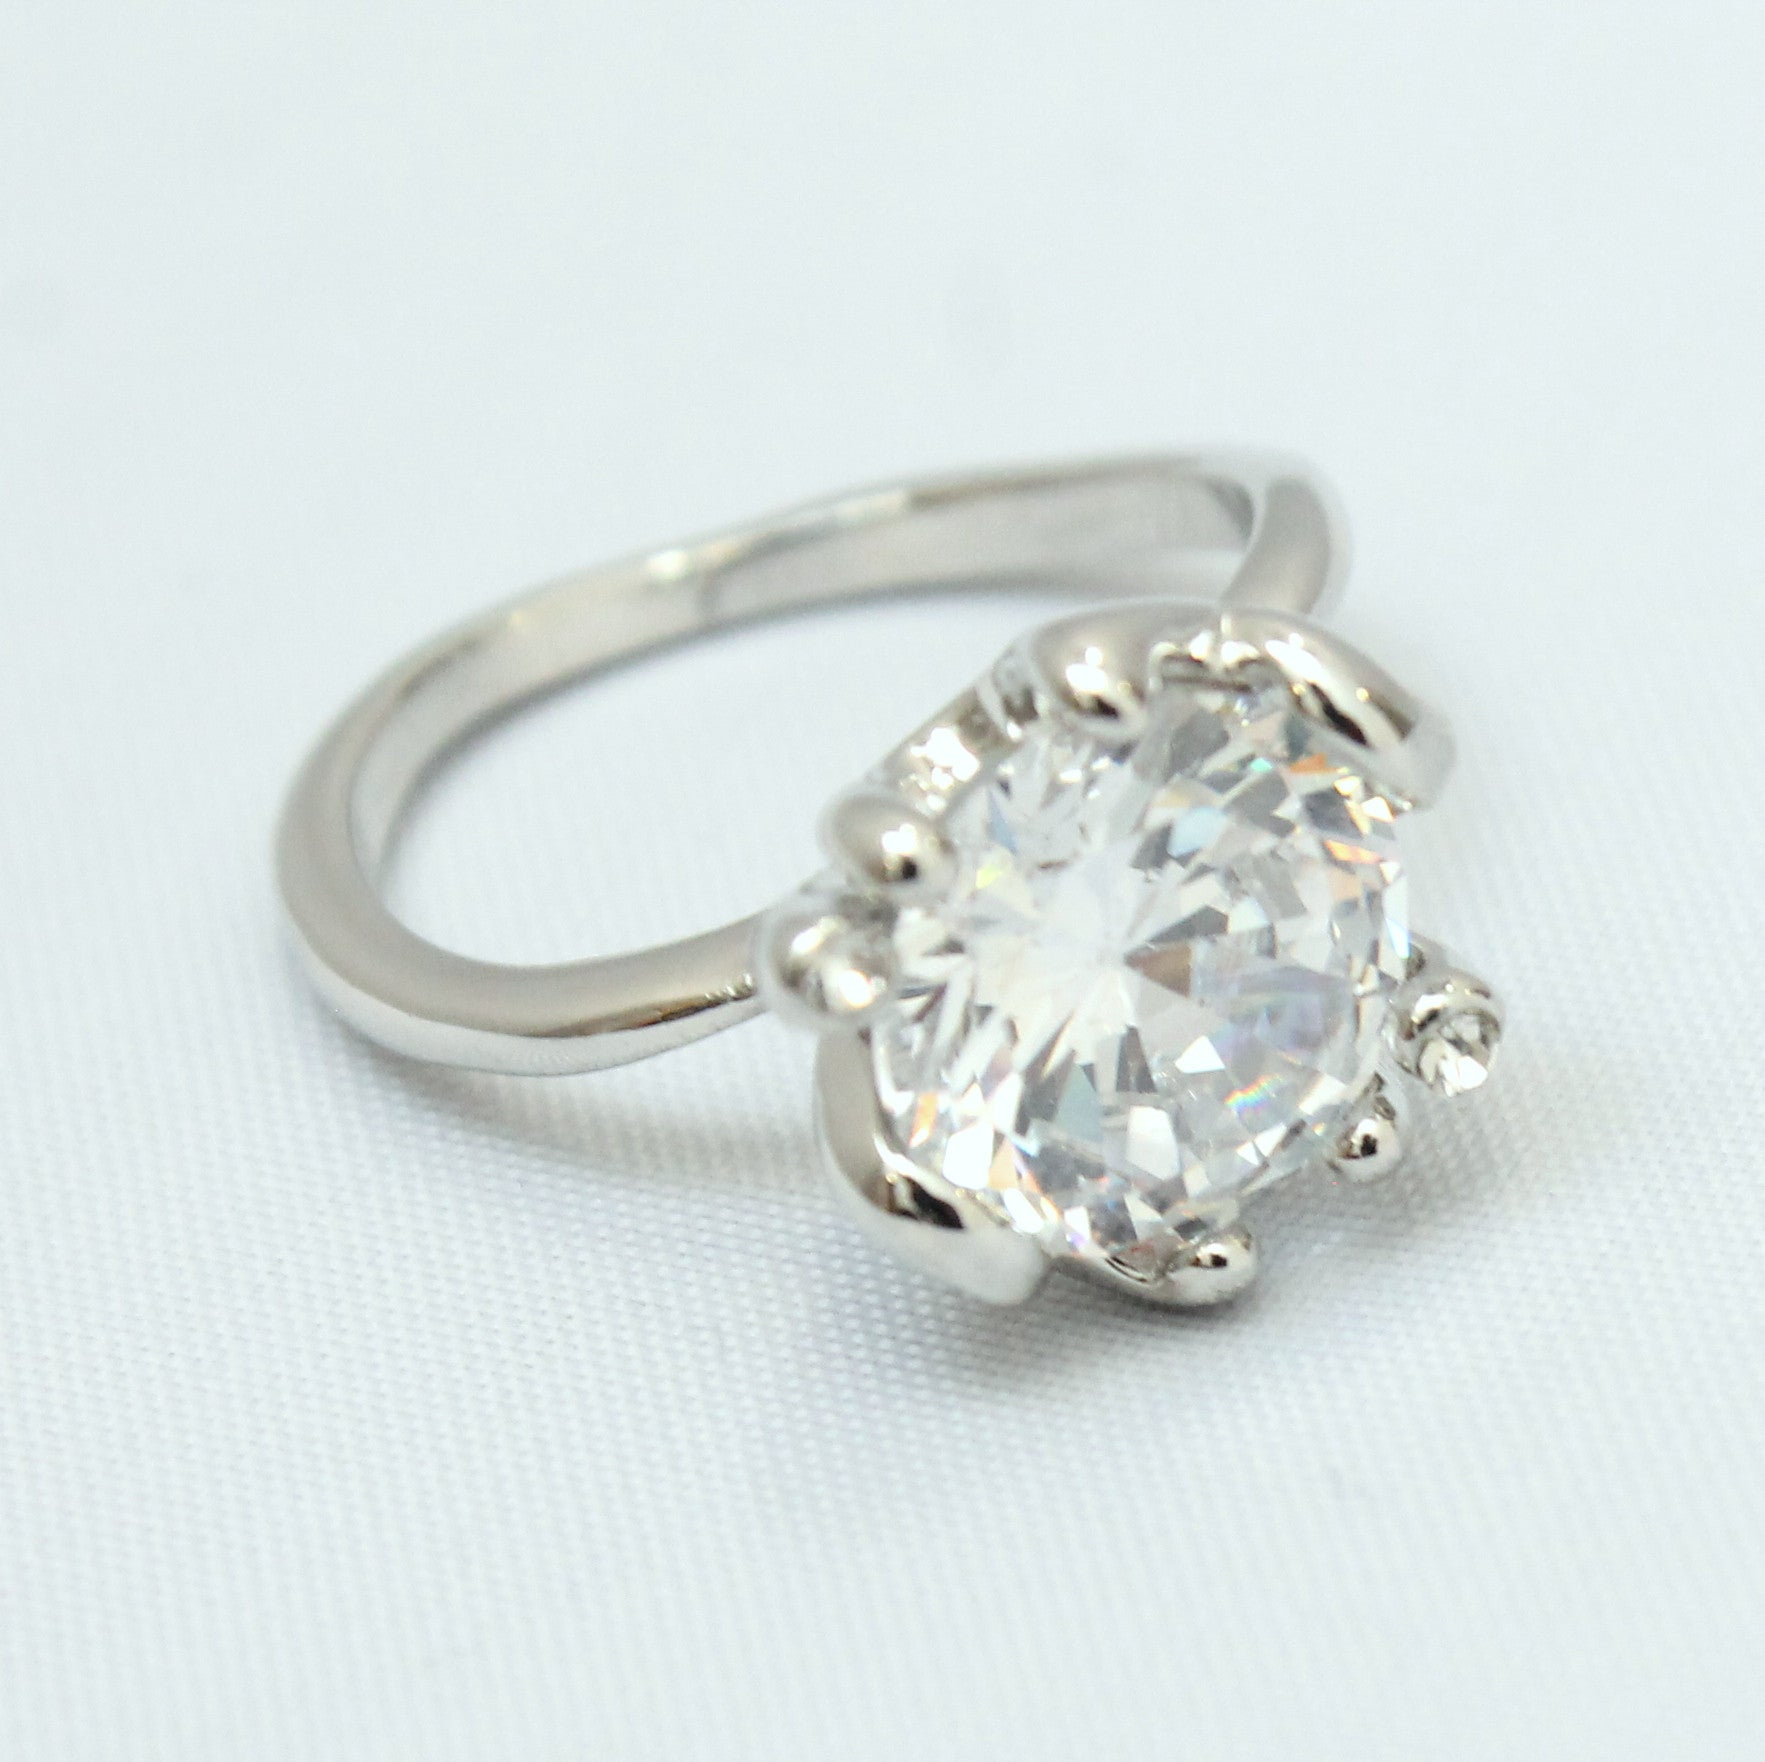 Princess - Large single crystal ring